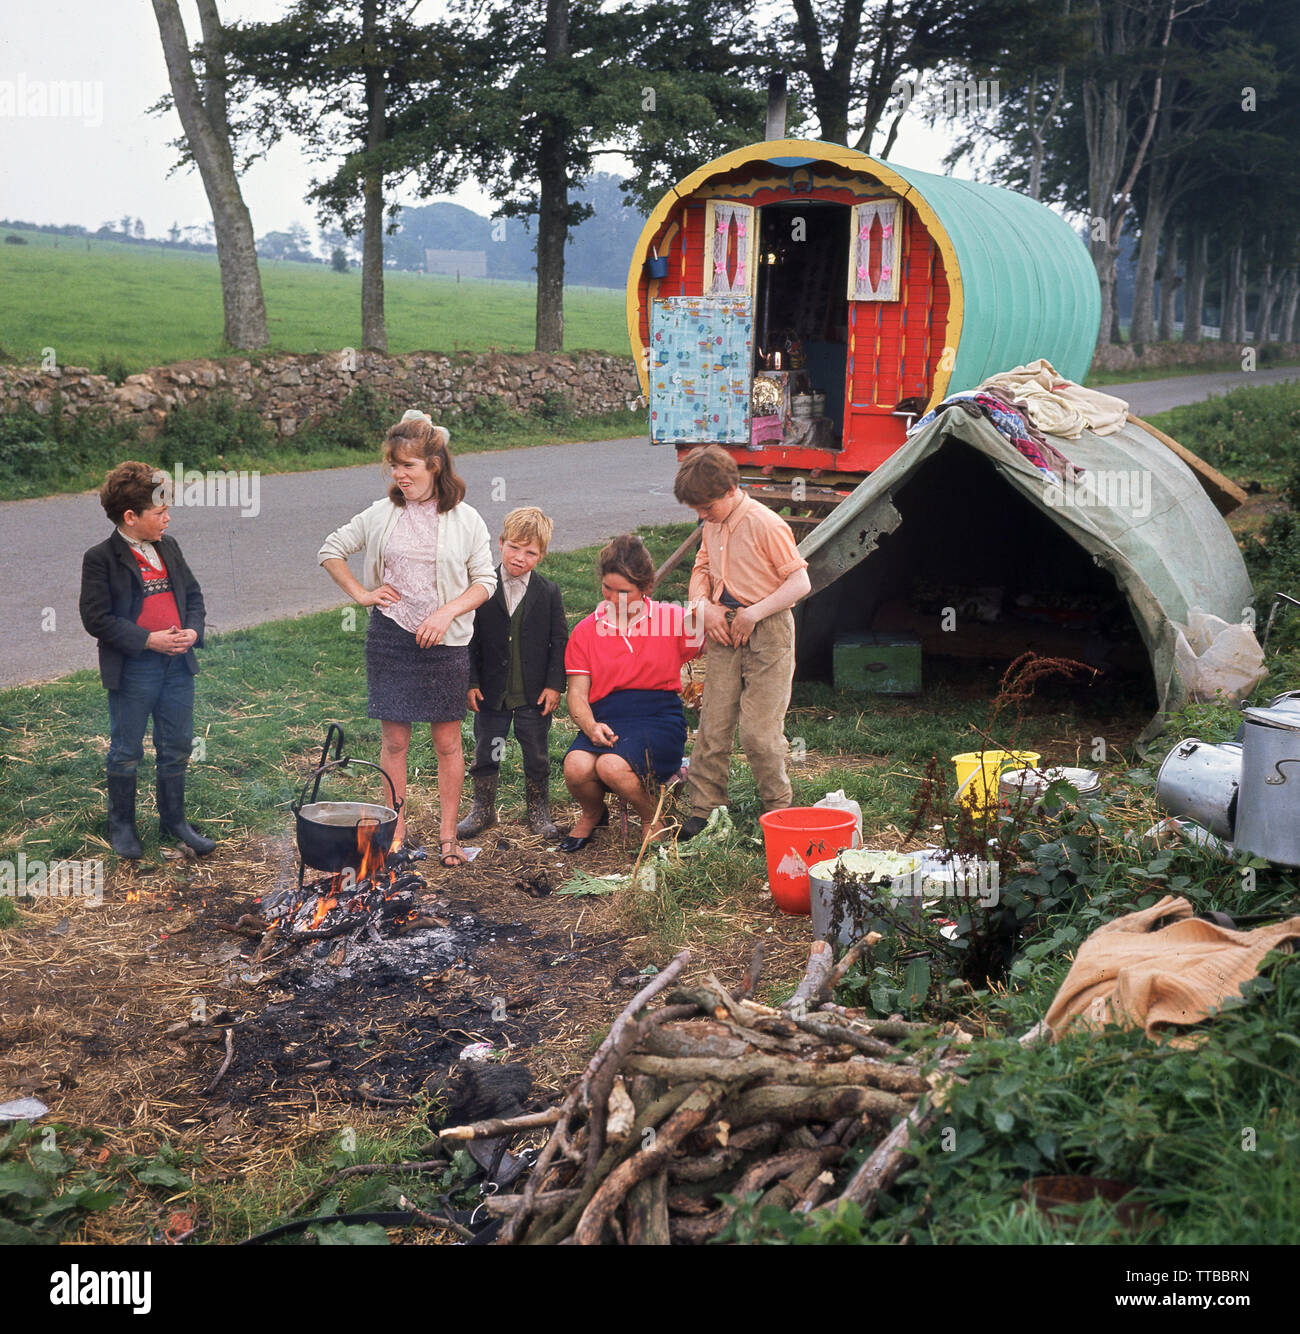 1960s, historical, Irish travellers... daytime and beside a country road in rural Ireland, a mother with her children cooking a pot on a fire outside  their home, a traditional barrel-roofed or bow top horse-drawn gypsy wagon and old tent. - Stock Image